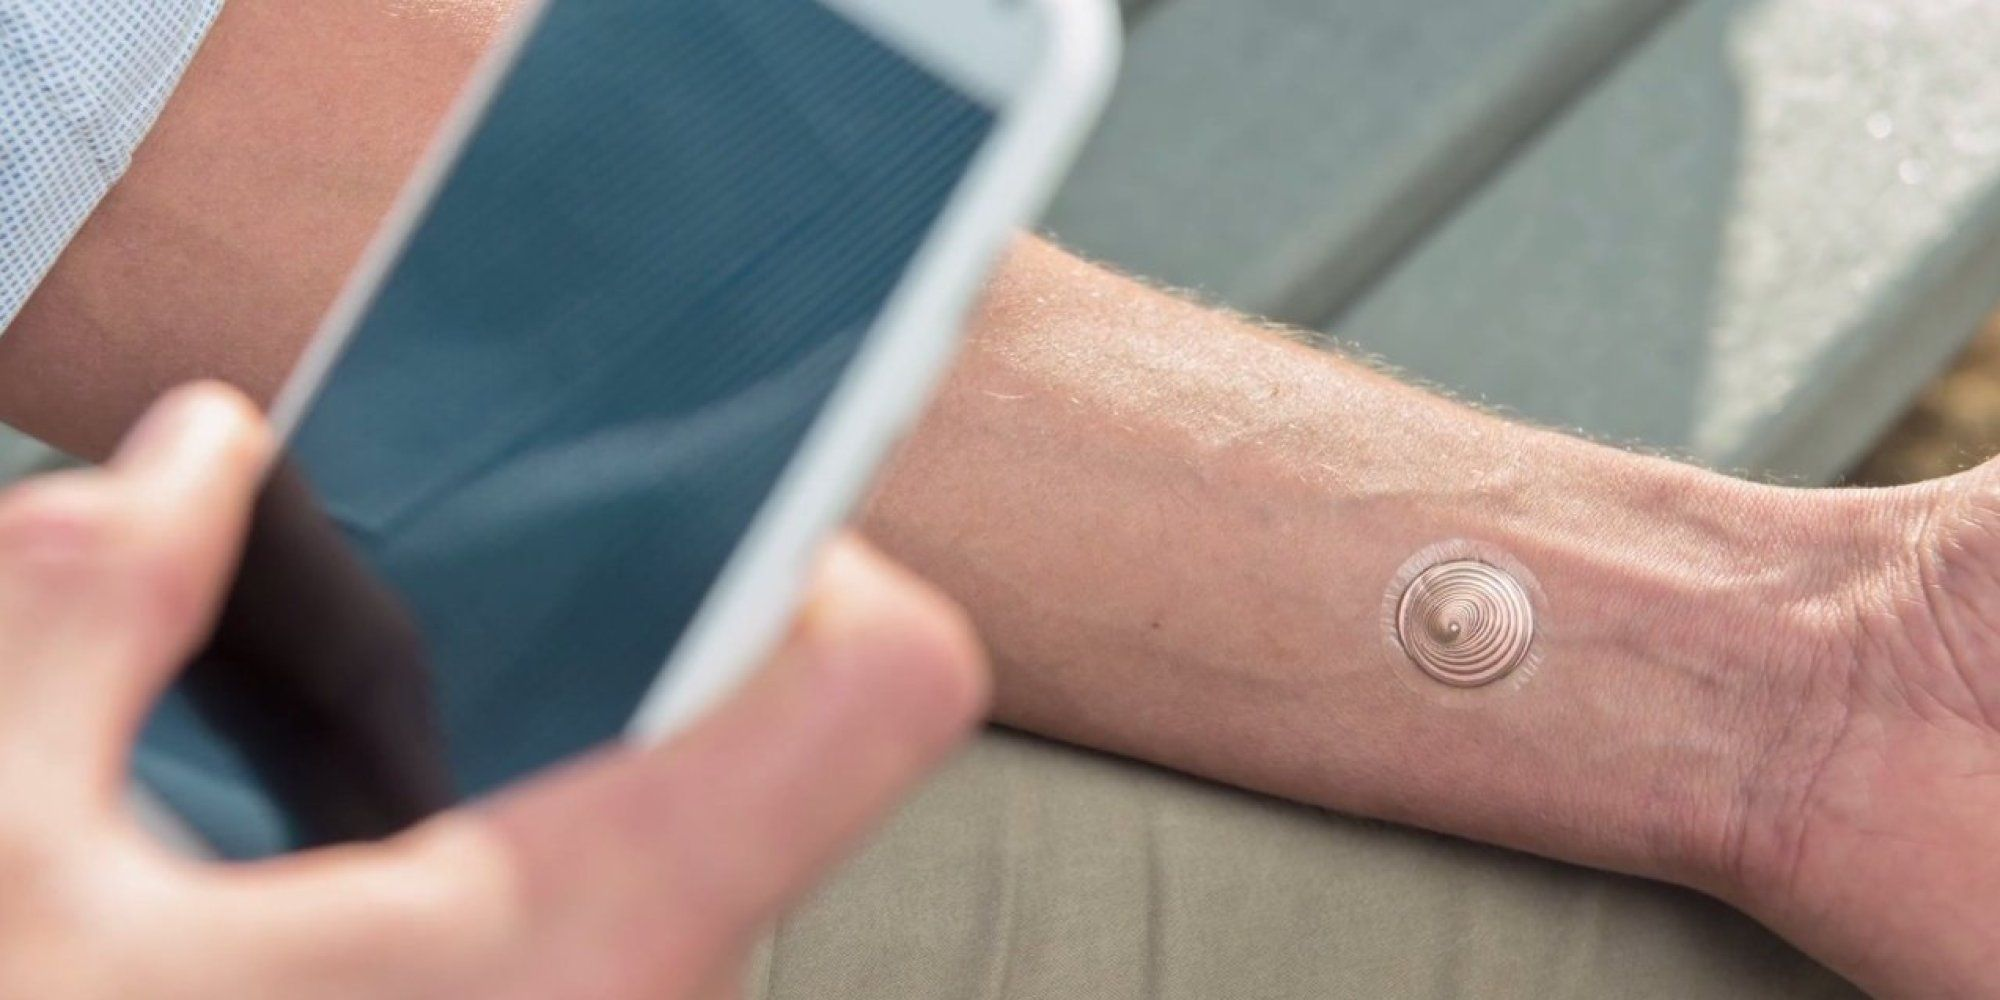 Google Wants To Tattoo You. This Is Not A Joke. Tattoos